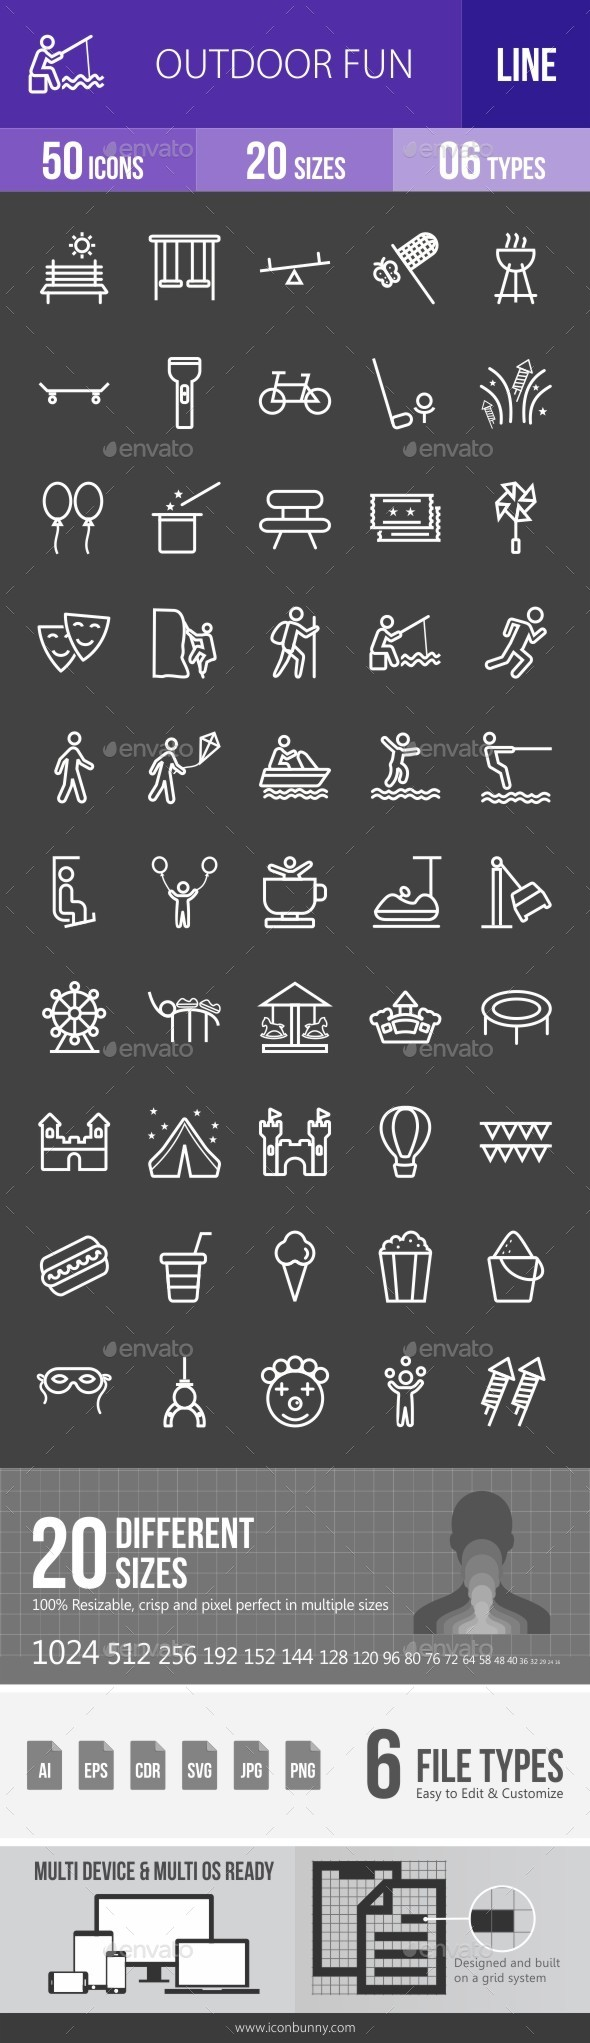 Outdoor Fun Line Inverted Icons - Icons